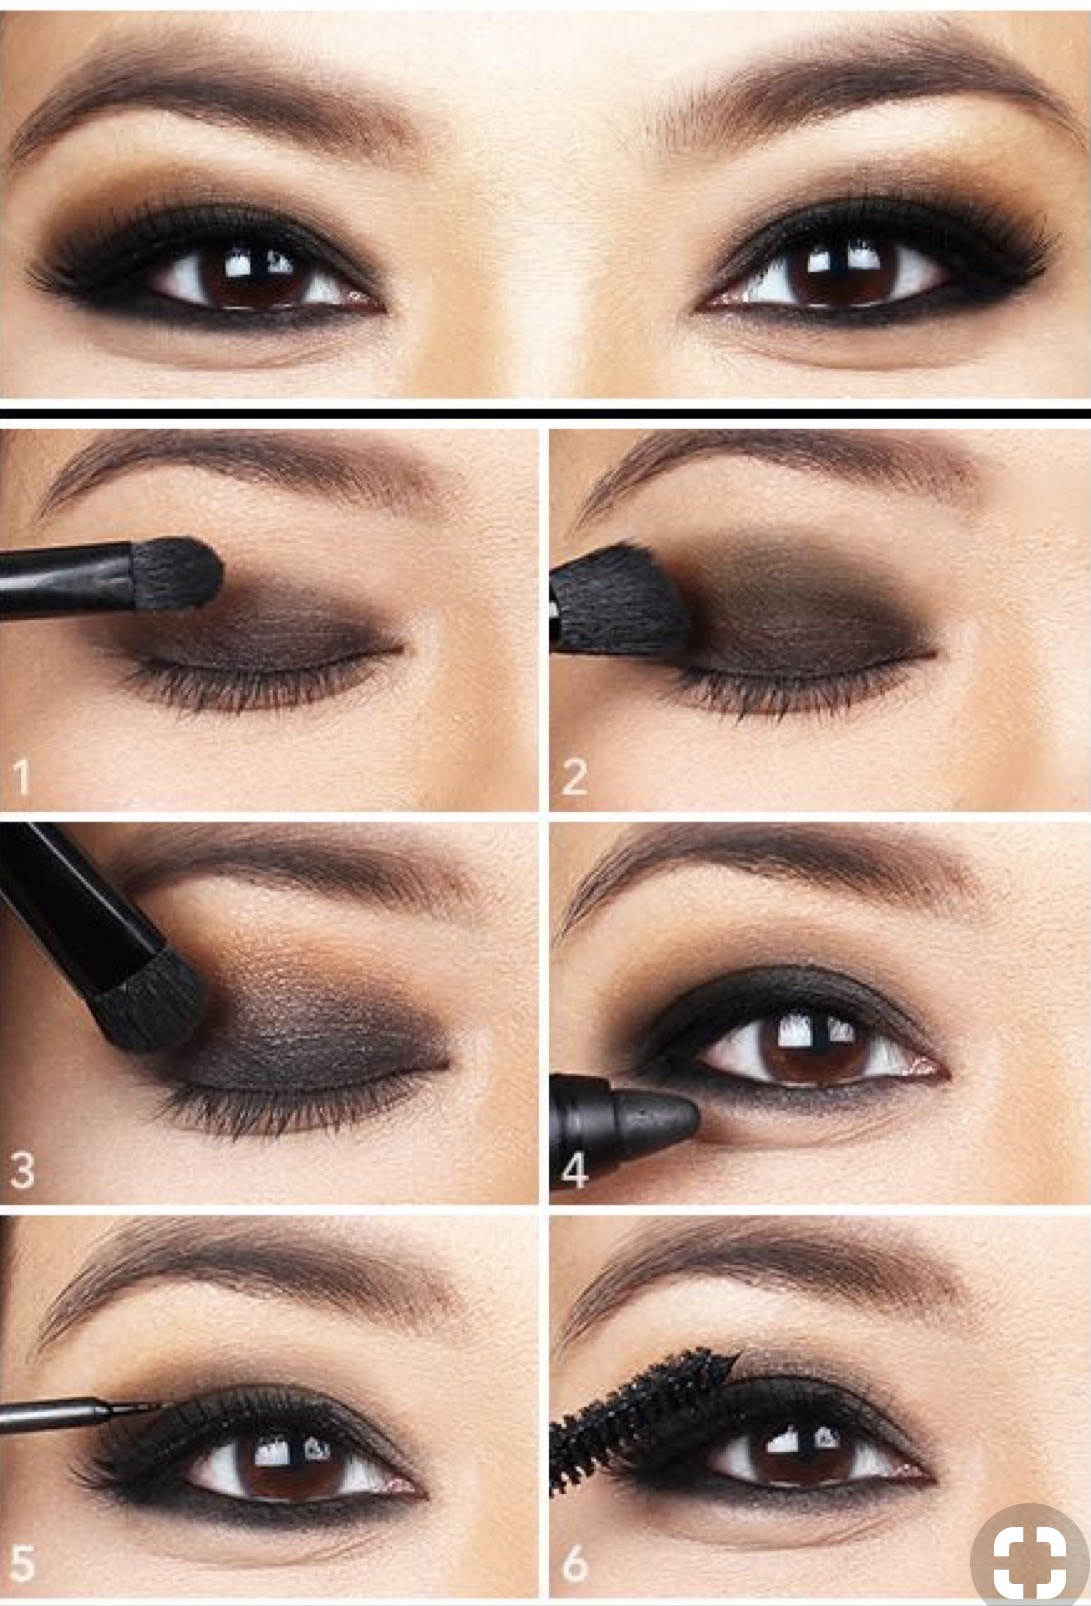 Smokey eye makeup tutorial for beginners